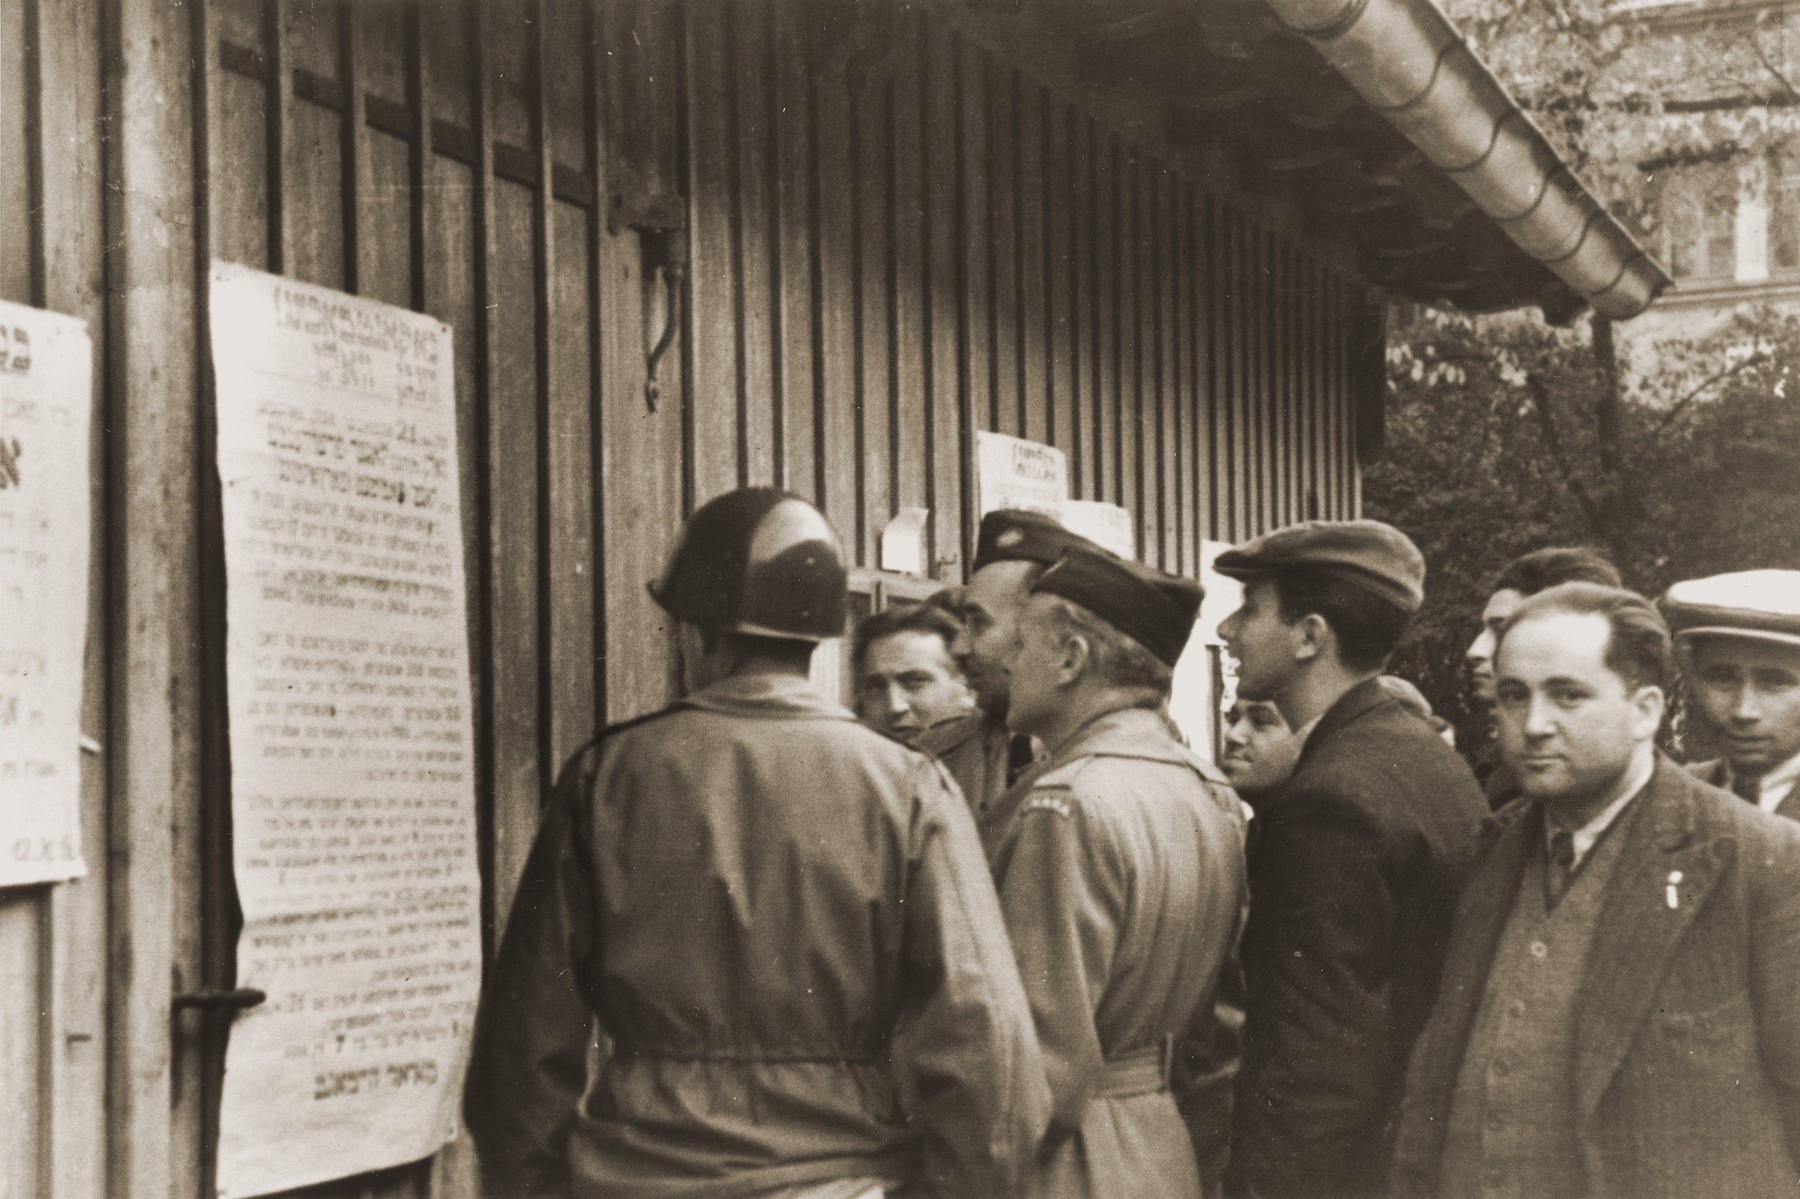 American officials read an election announcement posted outside the camp administration barracks in the Landsberg displaced persons camp.  Pictured from left to right are: Major Irving Heymont, camp director, Leo Srole, an UNRRA social worker who is translating the poster, and Dr. Abraham Glassgold, UNRRA director and a member of the camp committee.